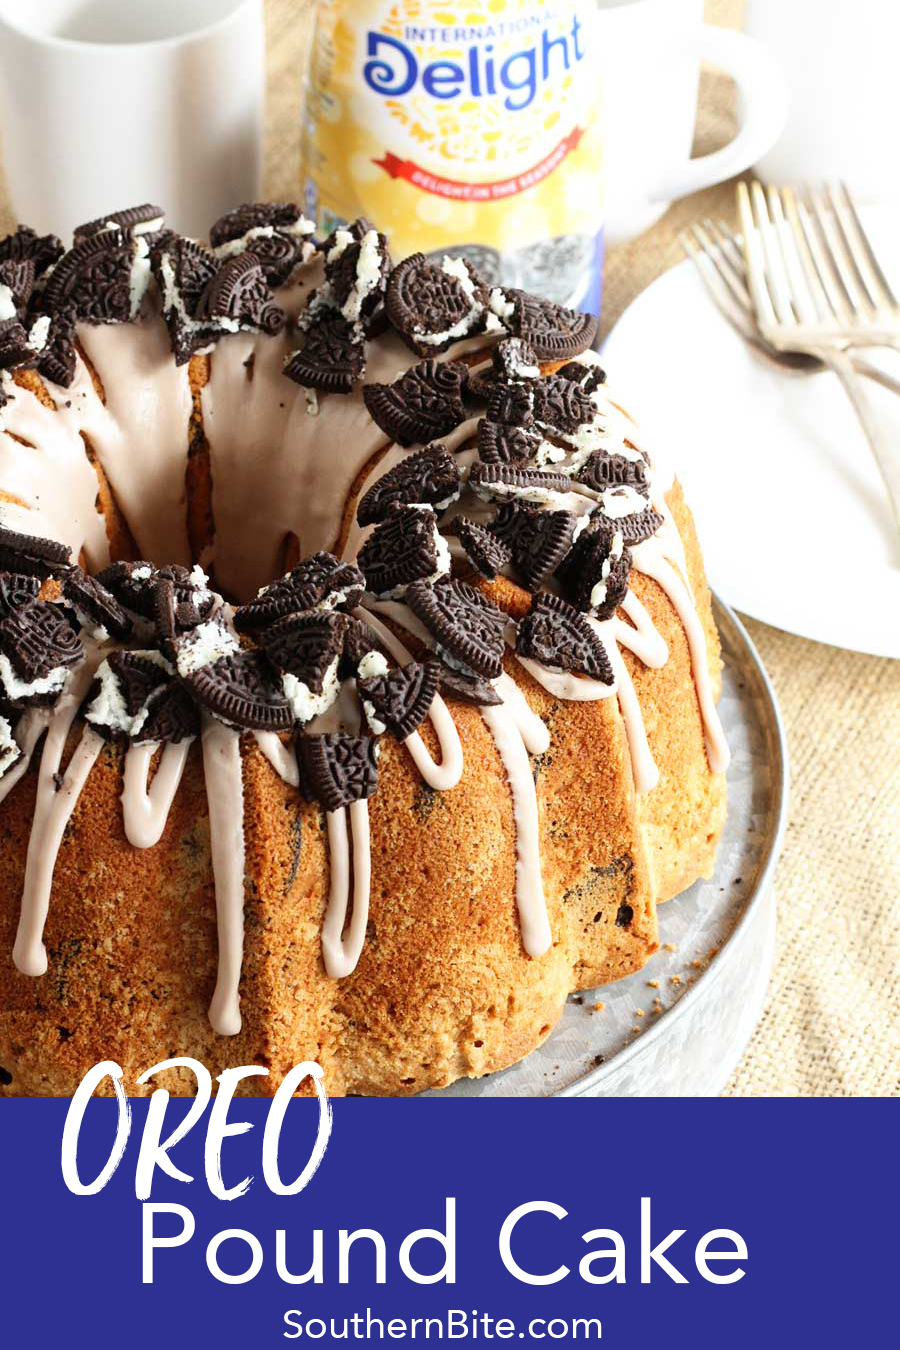 Classic flavors combine in this delicious OREO Pound Cake recipe! It has all the great flavor of a traditional pound cake, but is kicked up with tons of OREO flavor!